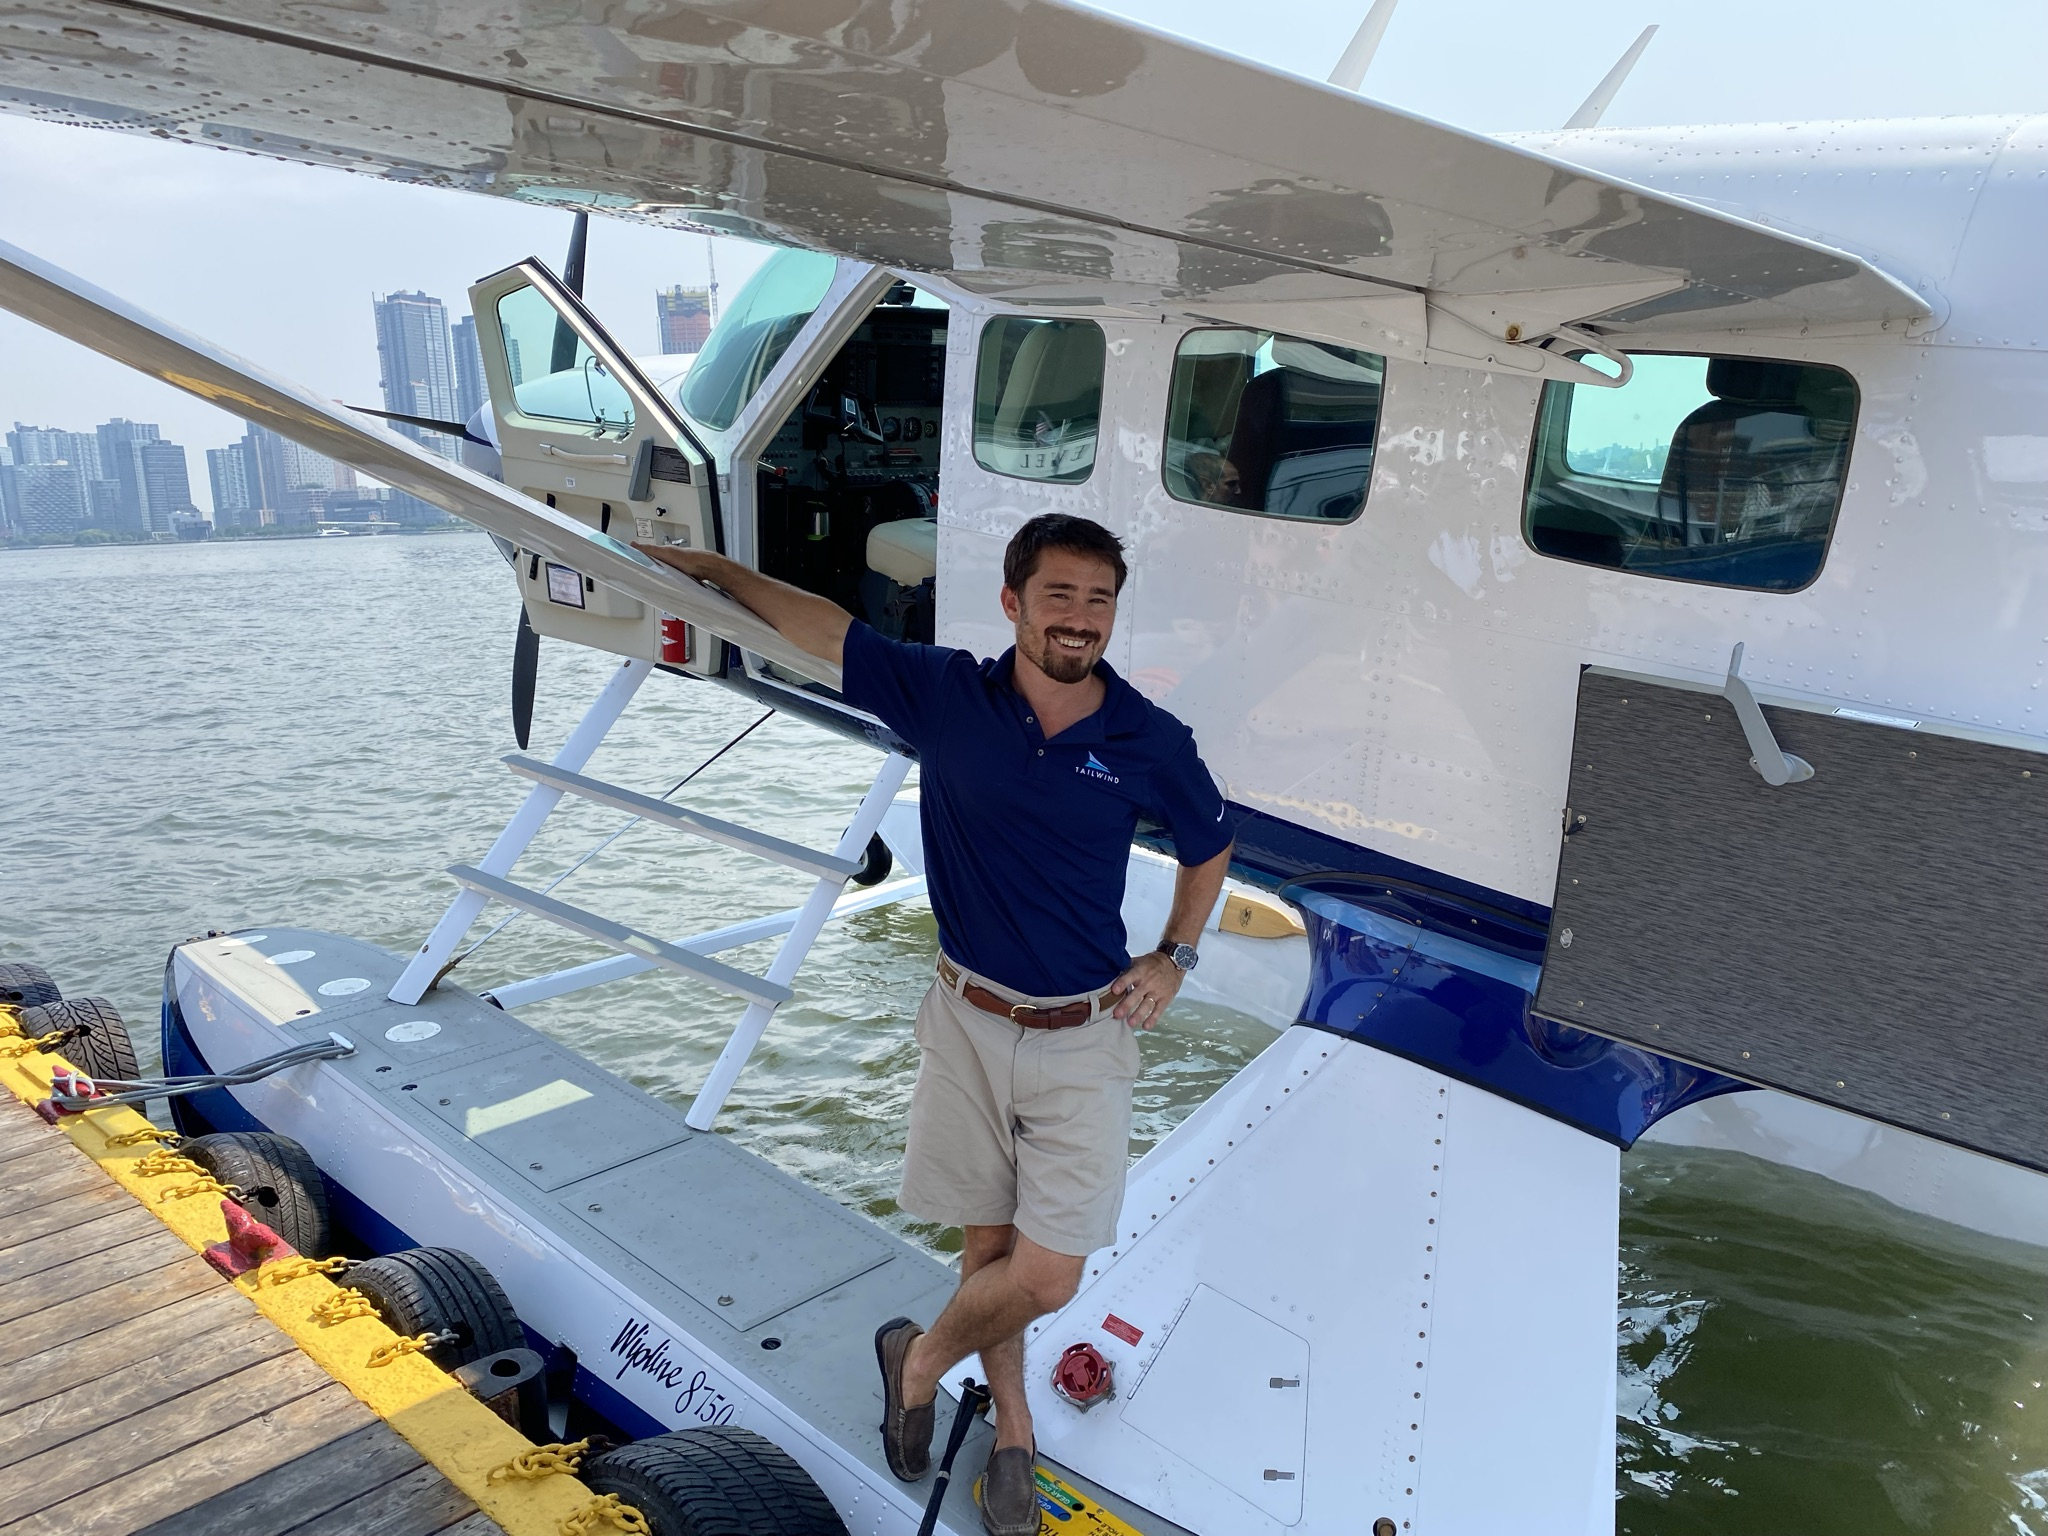 Tailwind seaplane at the dock prepping for flight, with a pilot standing in front of the aircraft, smiling